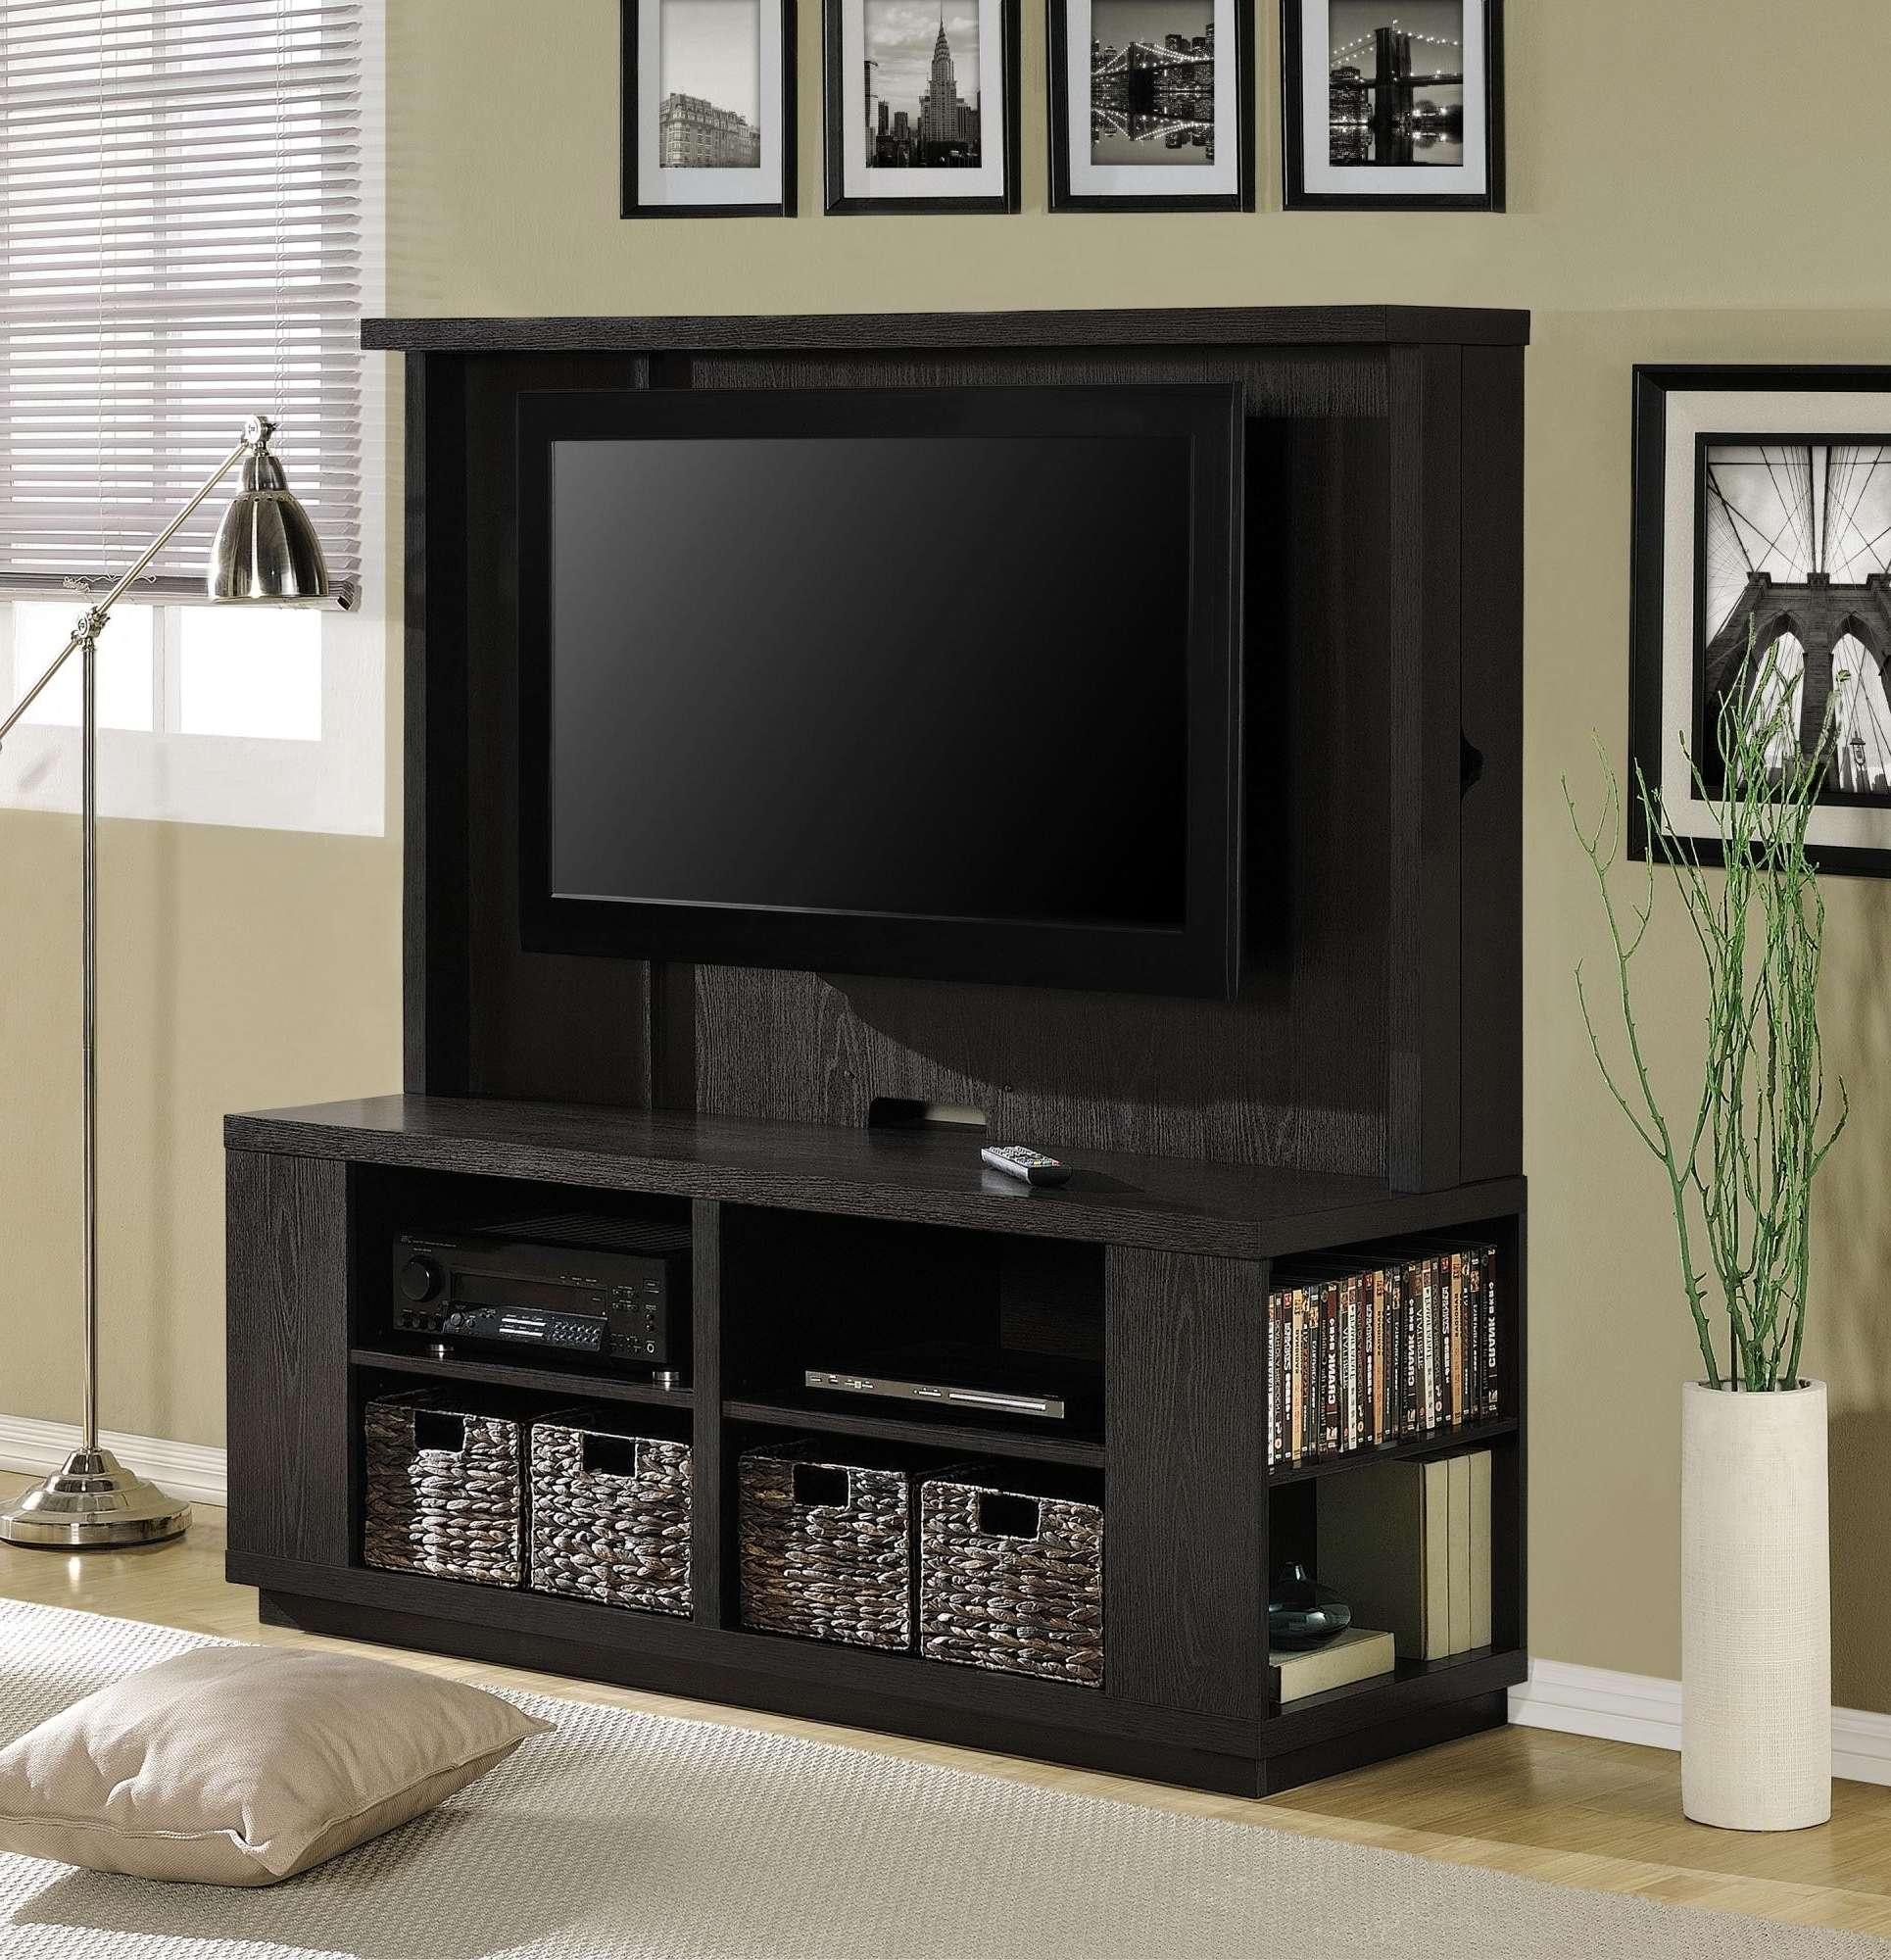 Sumptuous Design Tv Stand With Drawers And Shelves Remarkable Pertaining To Tv Stands With Drawers And Shelves (View 6 of 15)